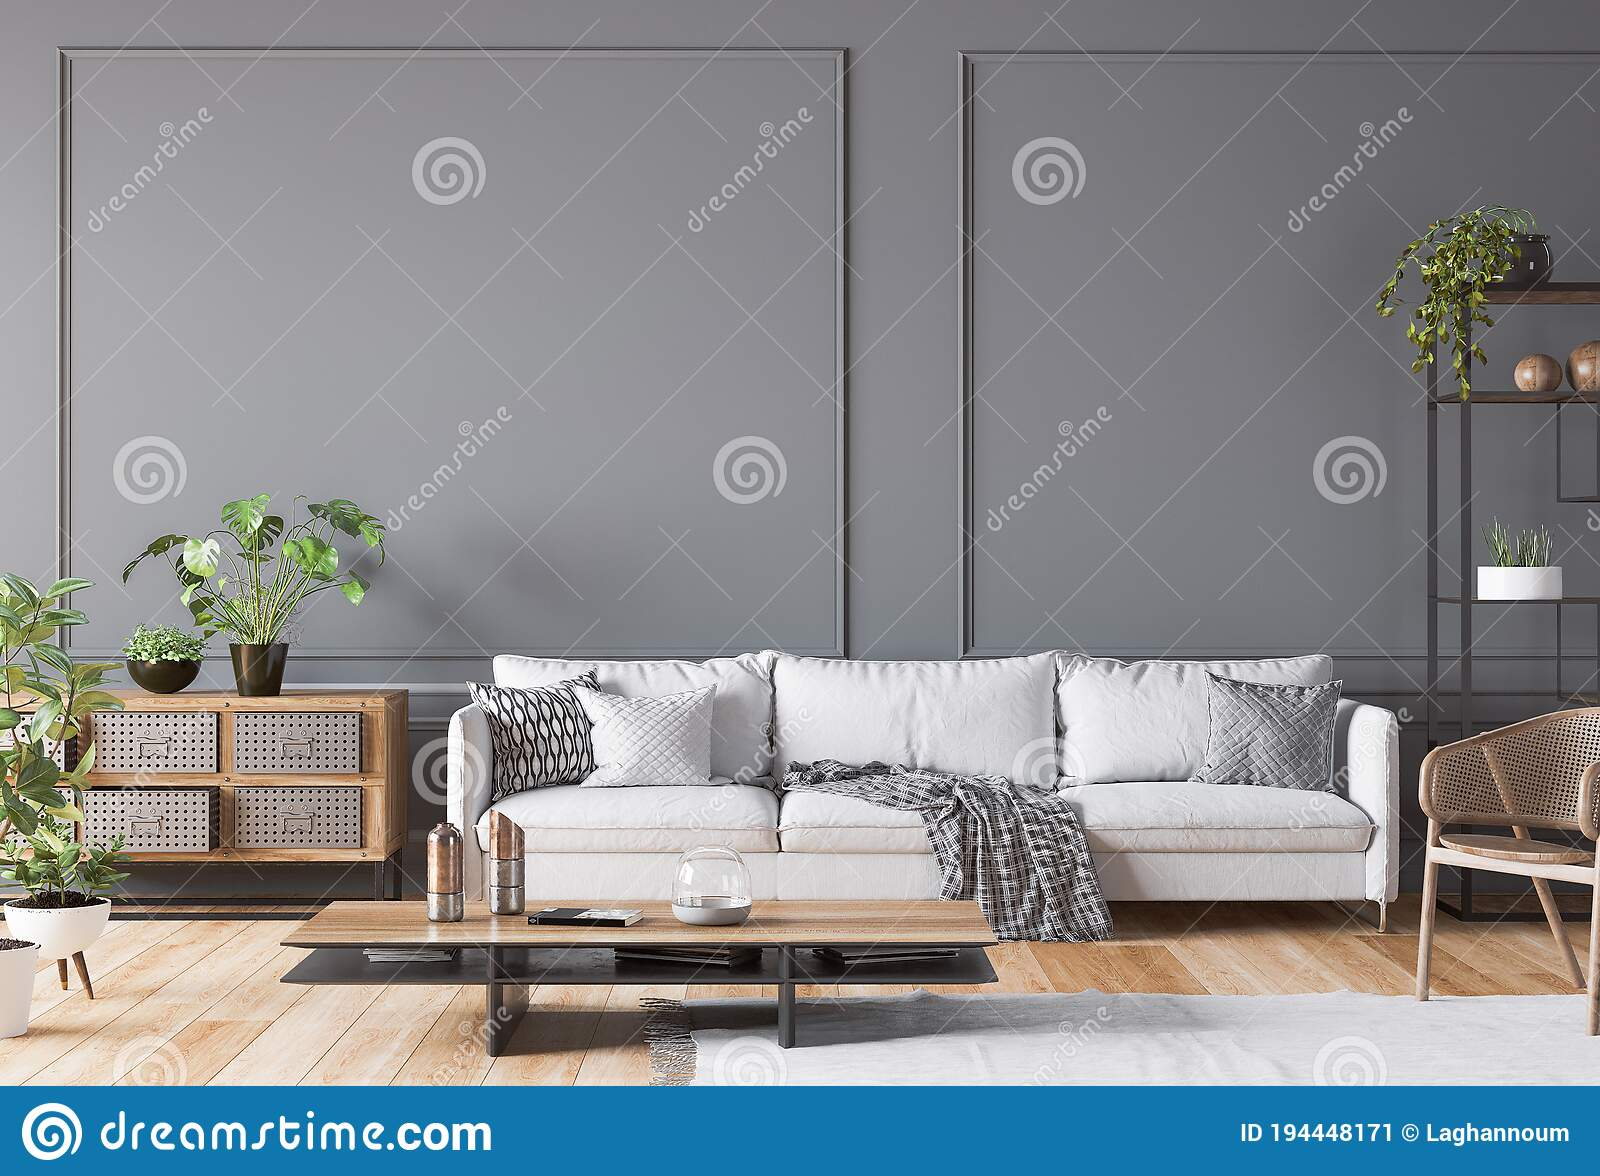 Open Space Living Room Interior Mockup White Sofa Rattan Chair Lots Of Fresh Plants And Wooden Coffee On Empty Gray Wall Stock Illustration Illustration Of Couch Cabinet 194448171